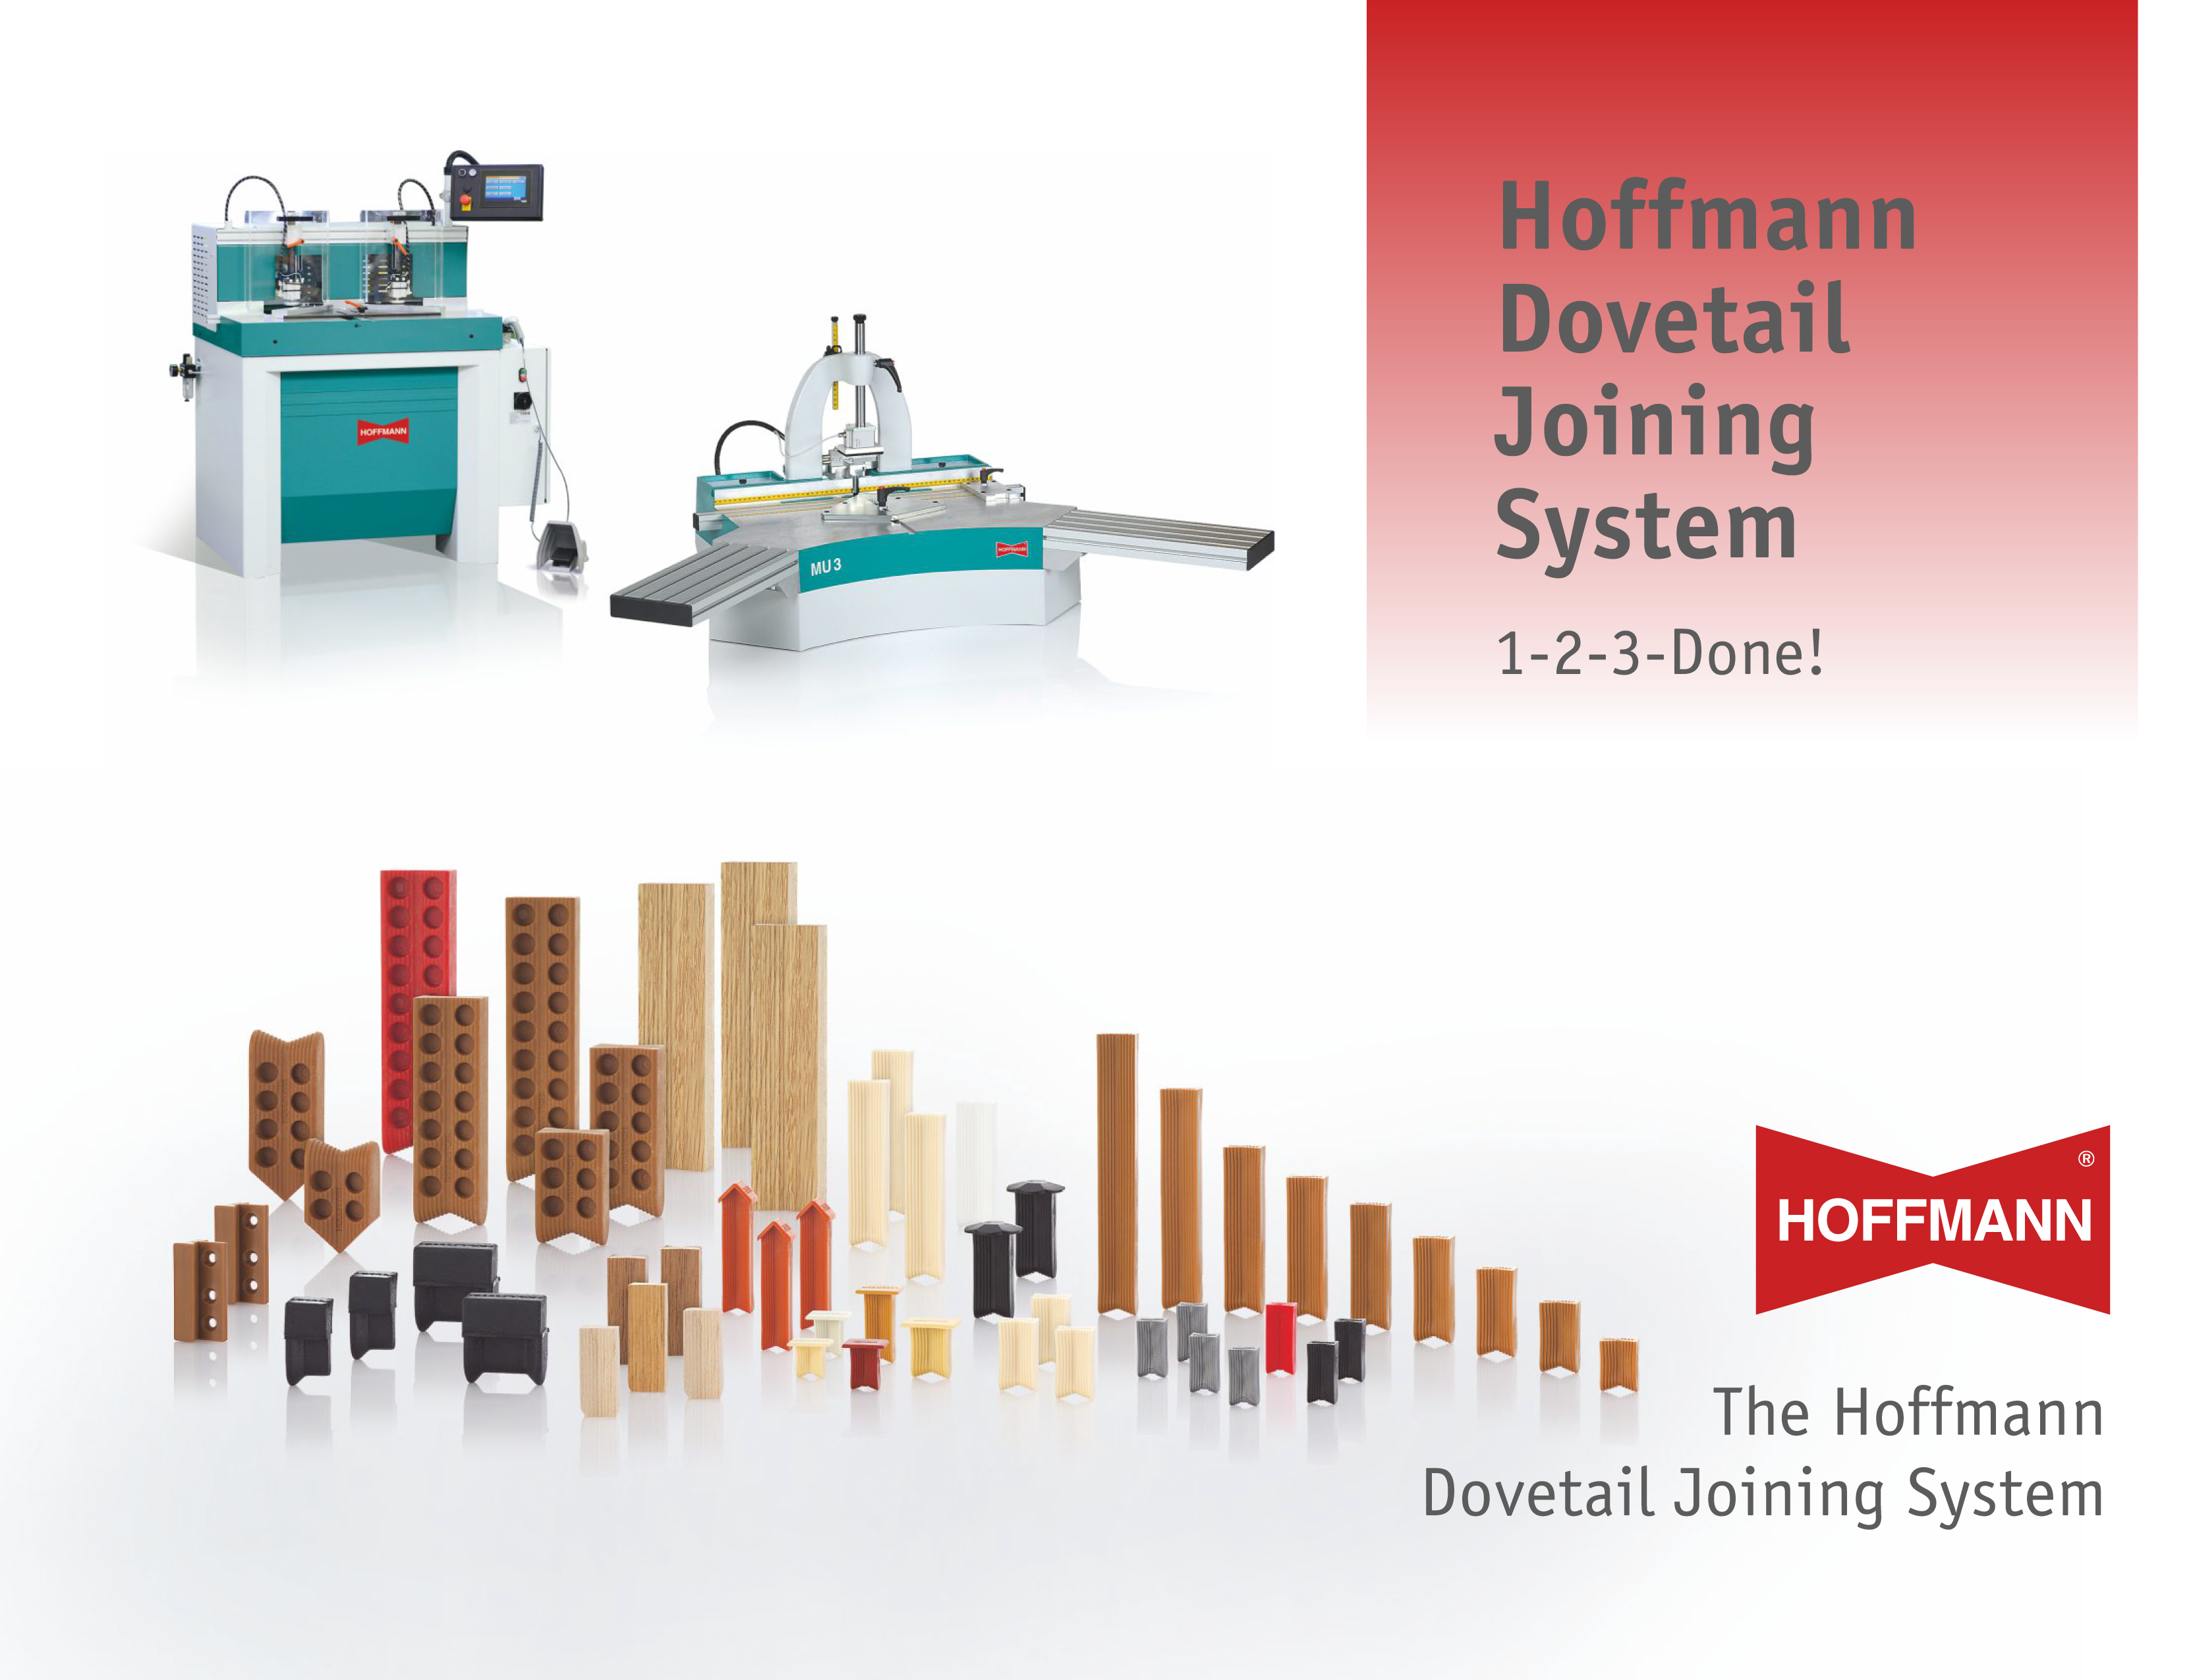 hoffmann-dovetail-joining-system-catalog-cover-page.jpg